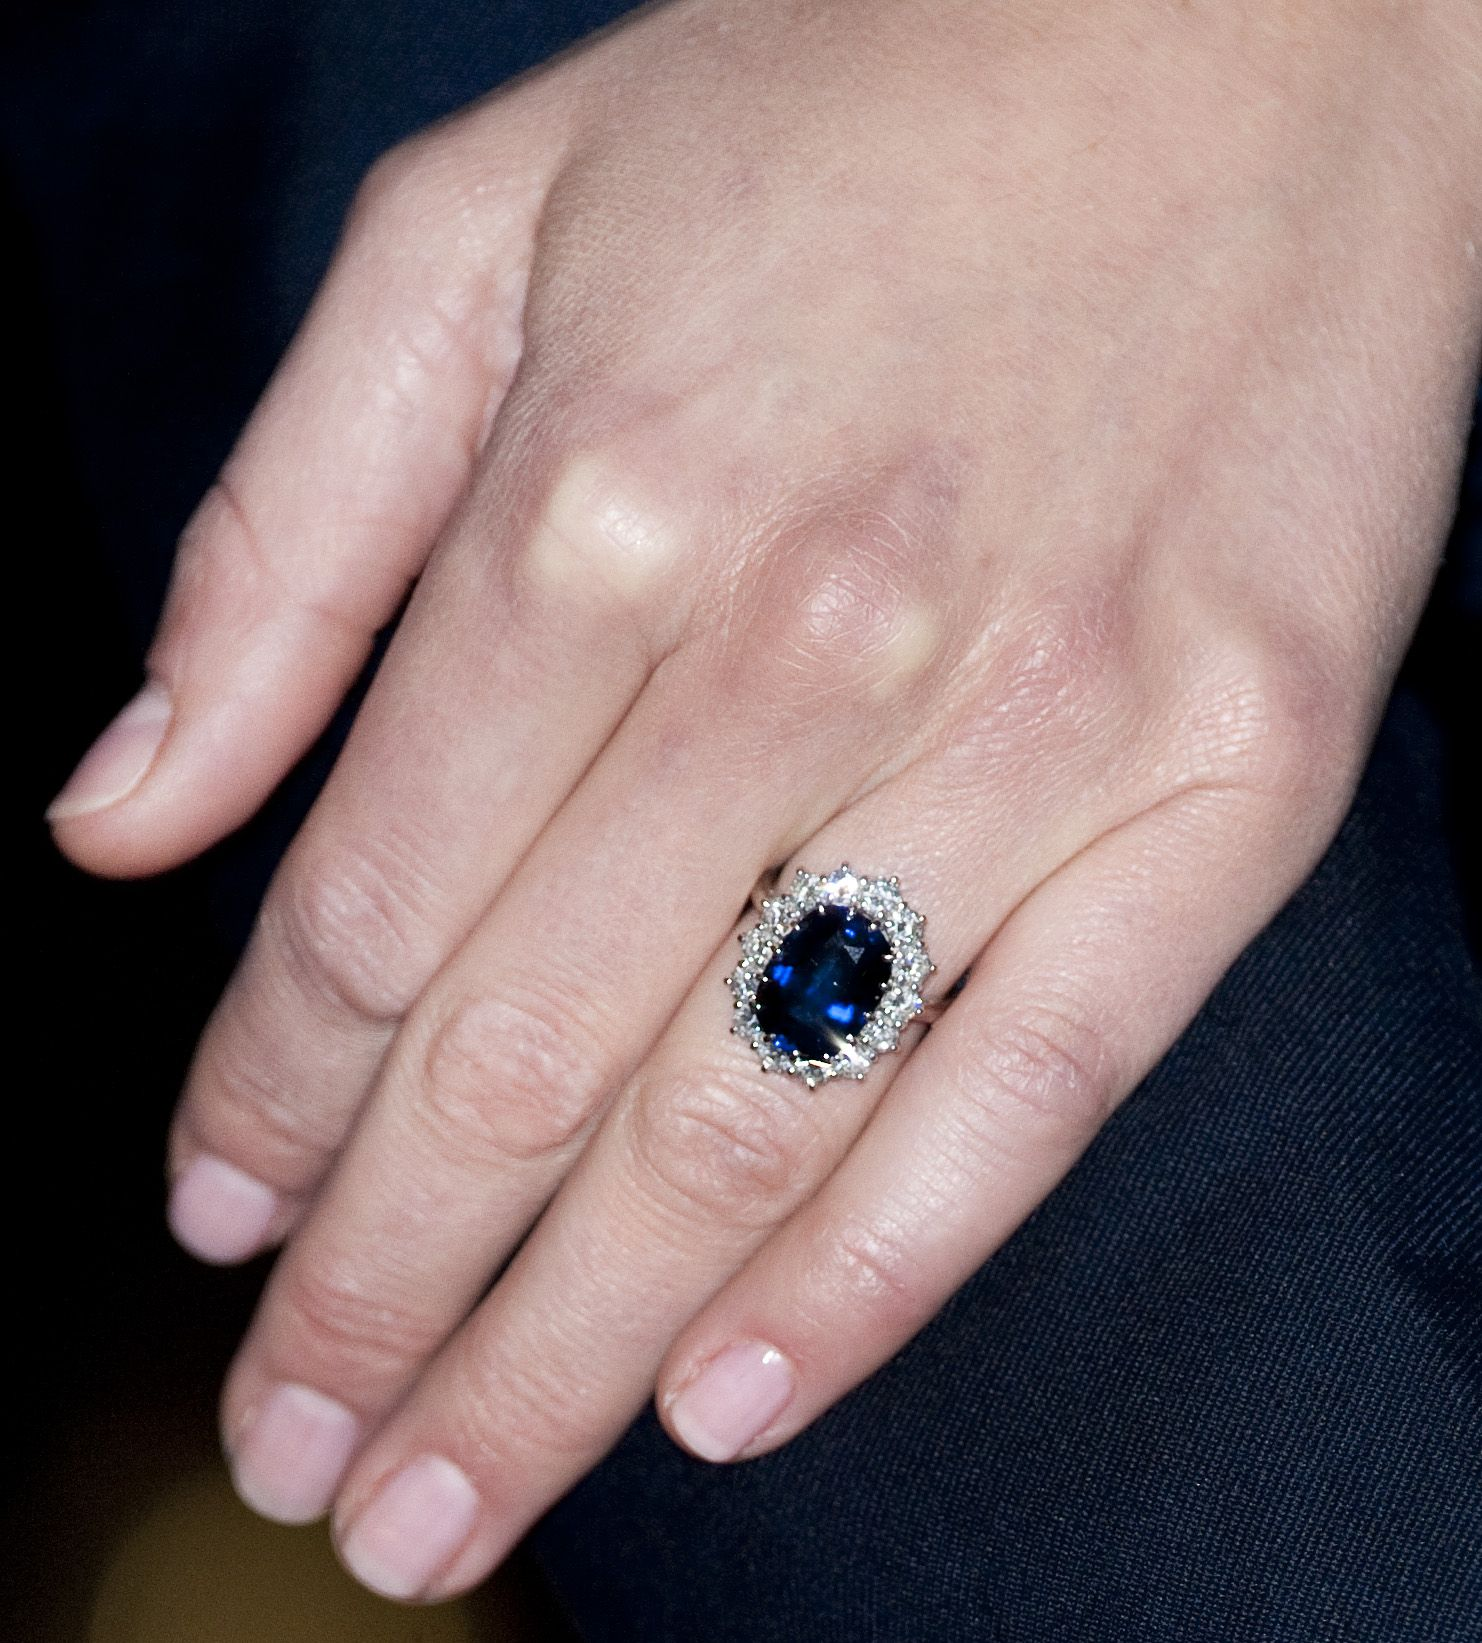 13 Of The Most Famous Jewels In The World | Engagement, Jewel and ...